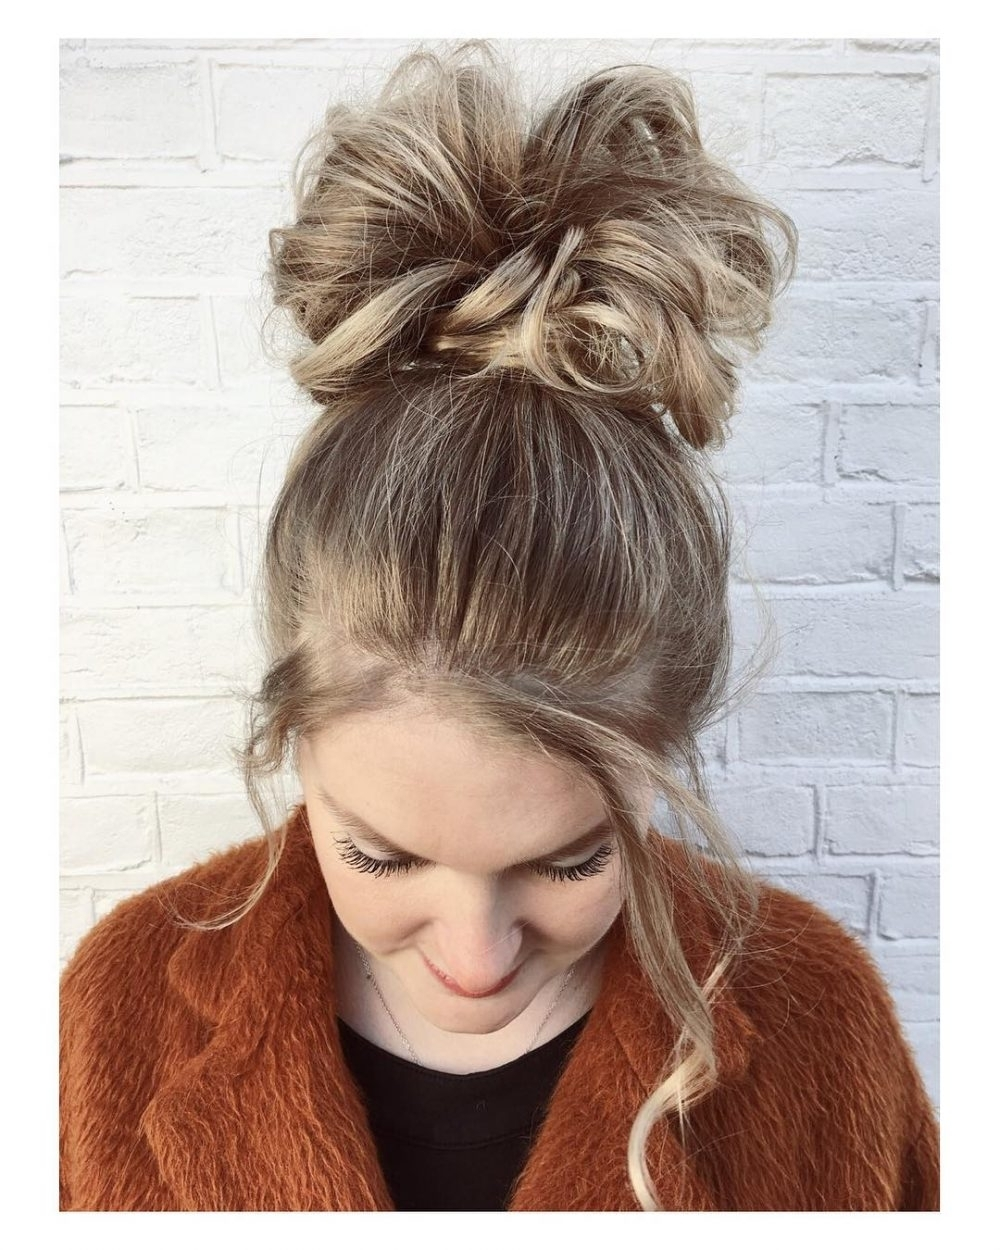 34 Easy Updos For Long Hair Trending For 2018 Intended For Updos For Long Hair With Bangs (View 13 of 15)